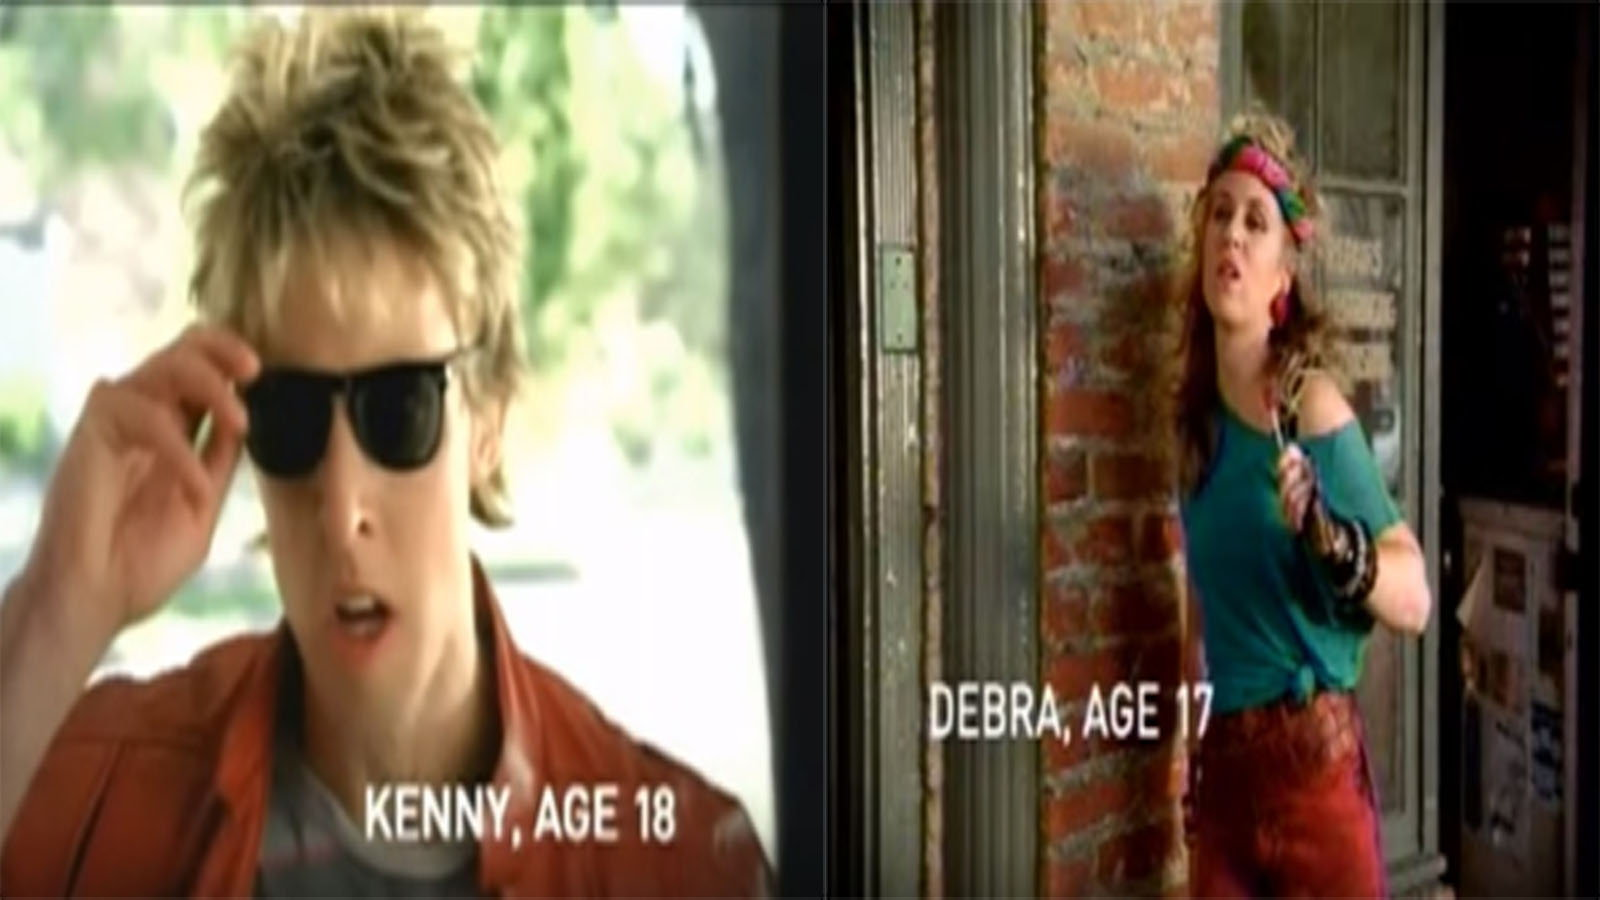 Kenny and Debra